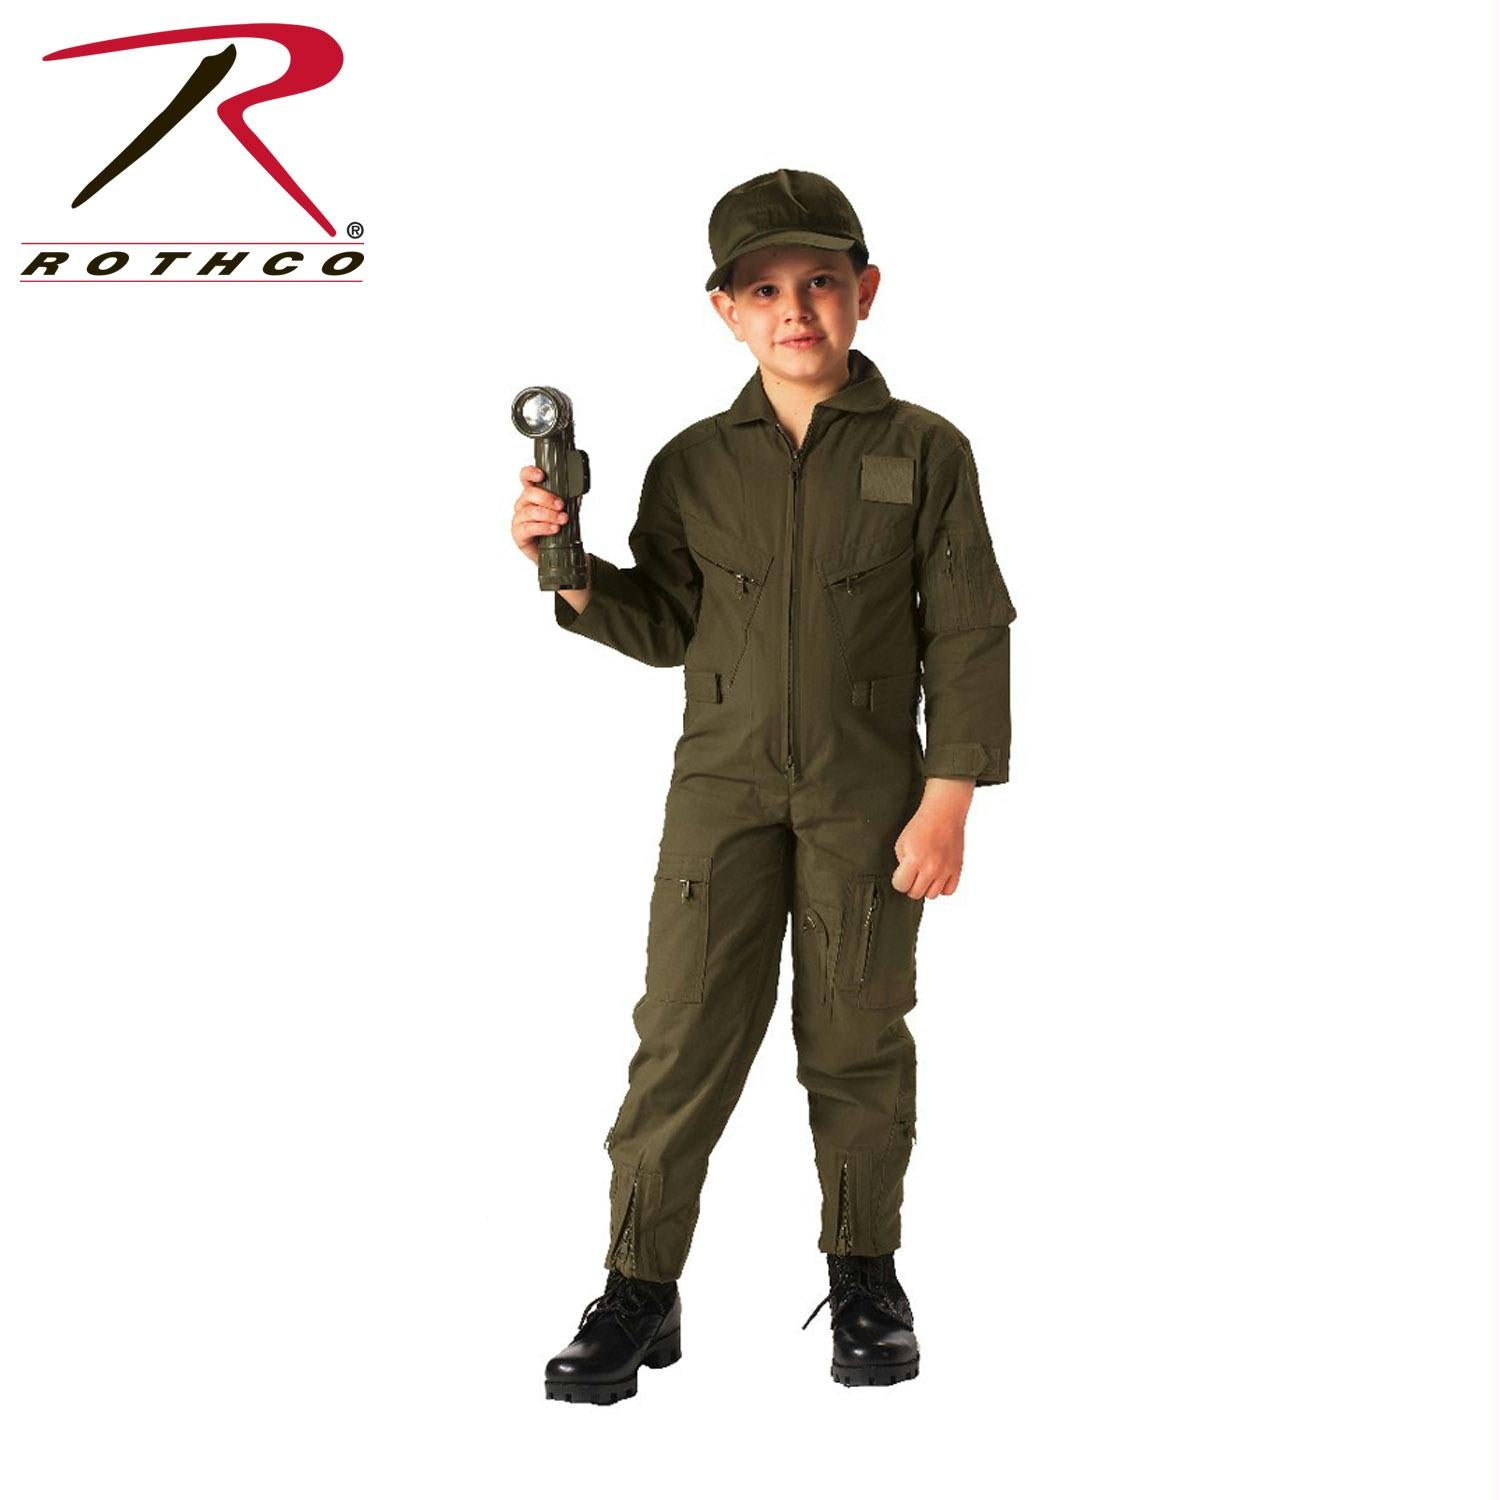 Rothco Kids Air Force Type Flightsuit - Olive Drab / XL